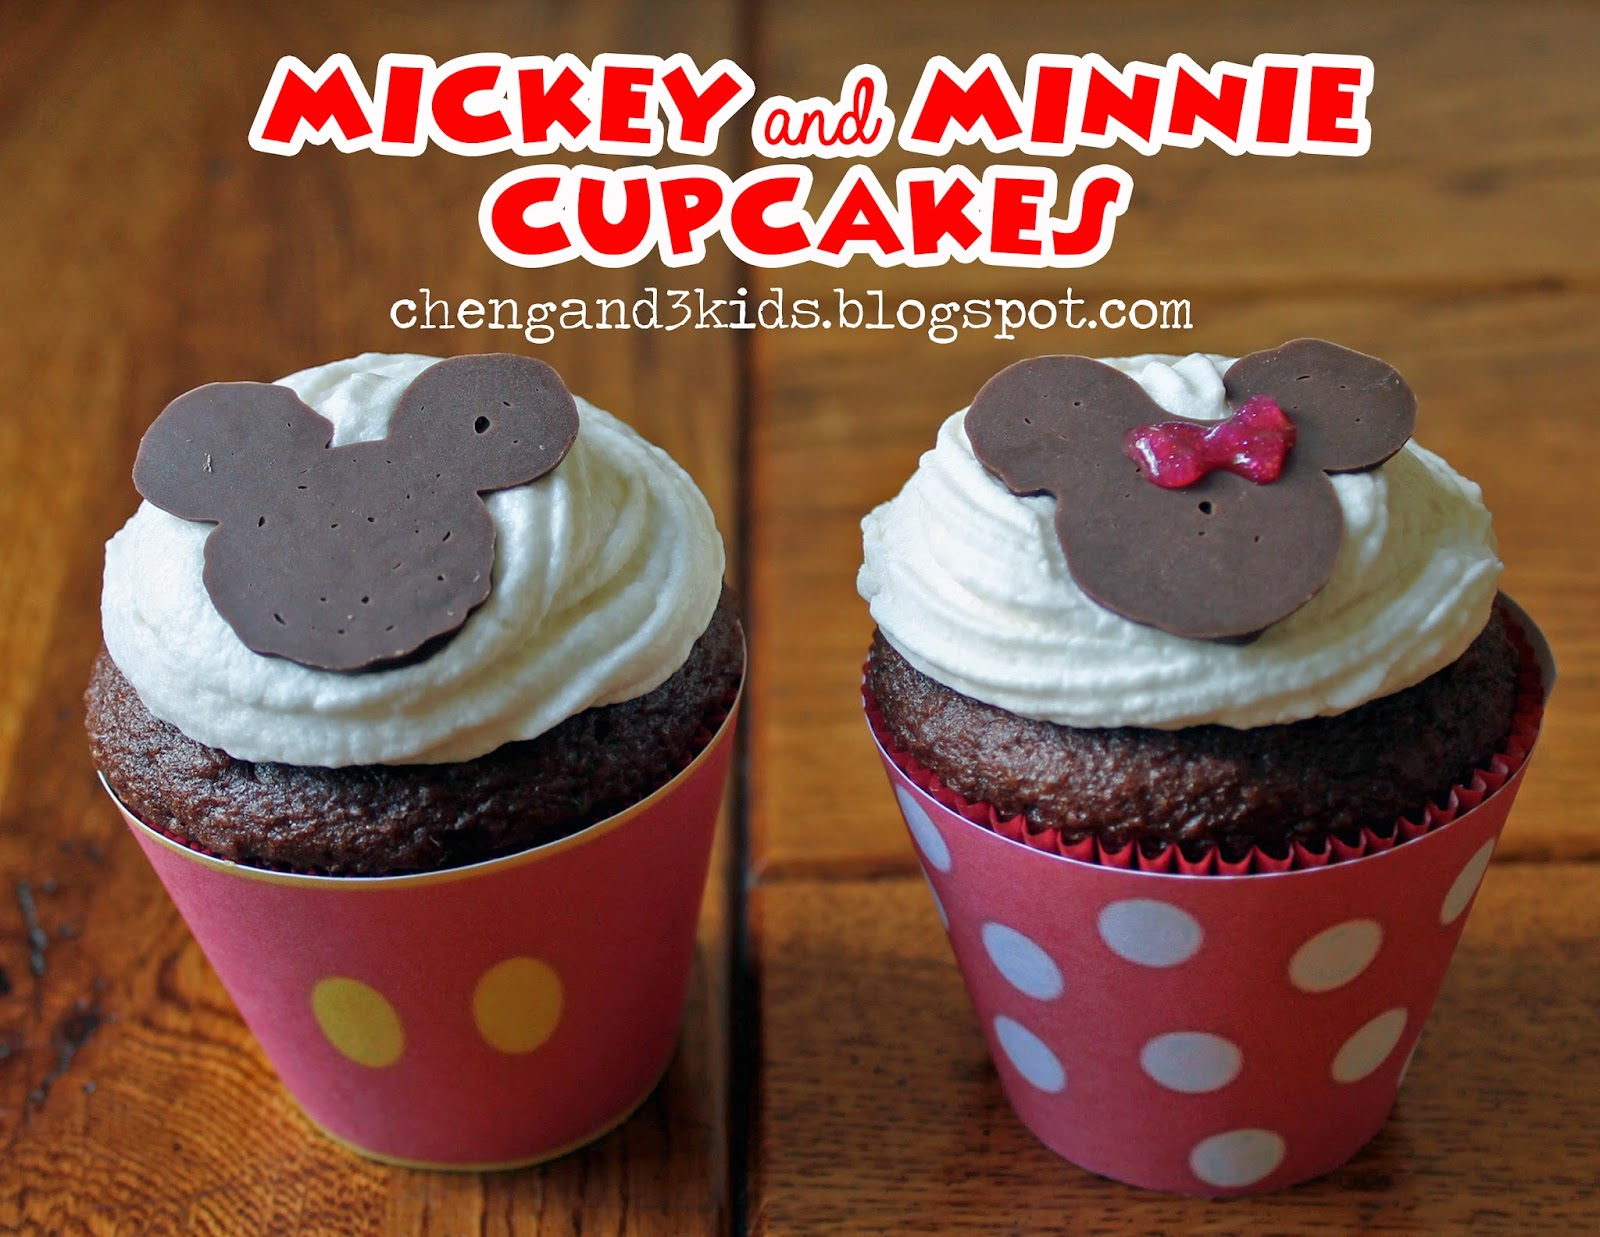 Mickey and Minnie Cupcakes by chengand3kids.blogspot.com